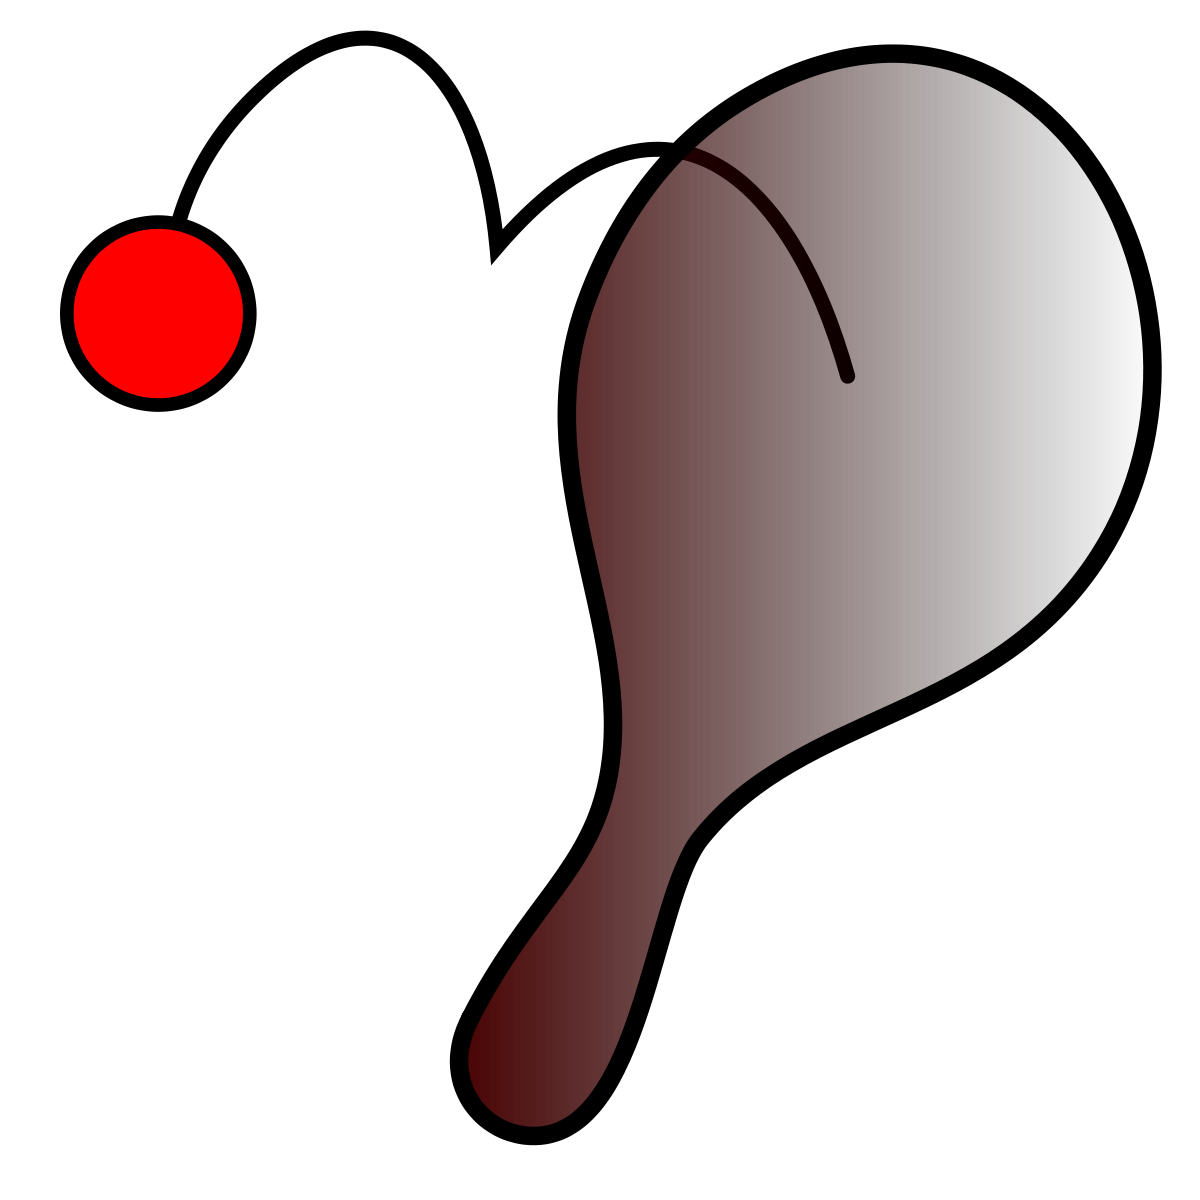 clipart royalty free Paddle ball